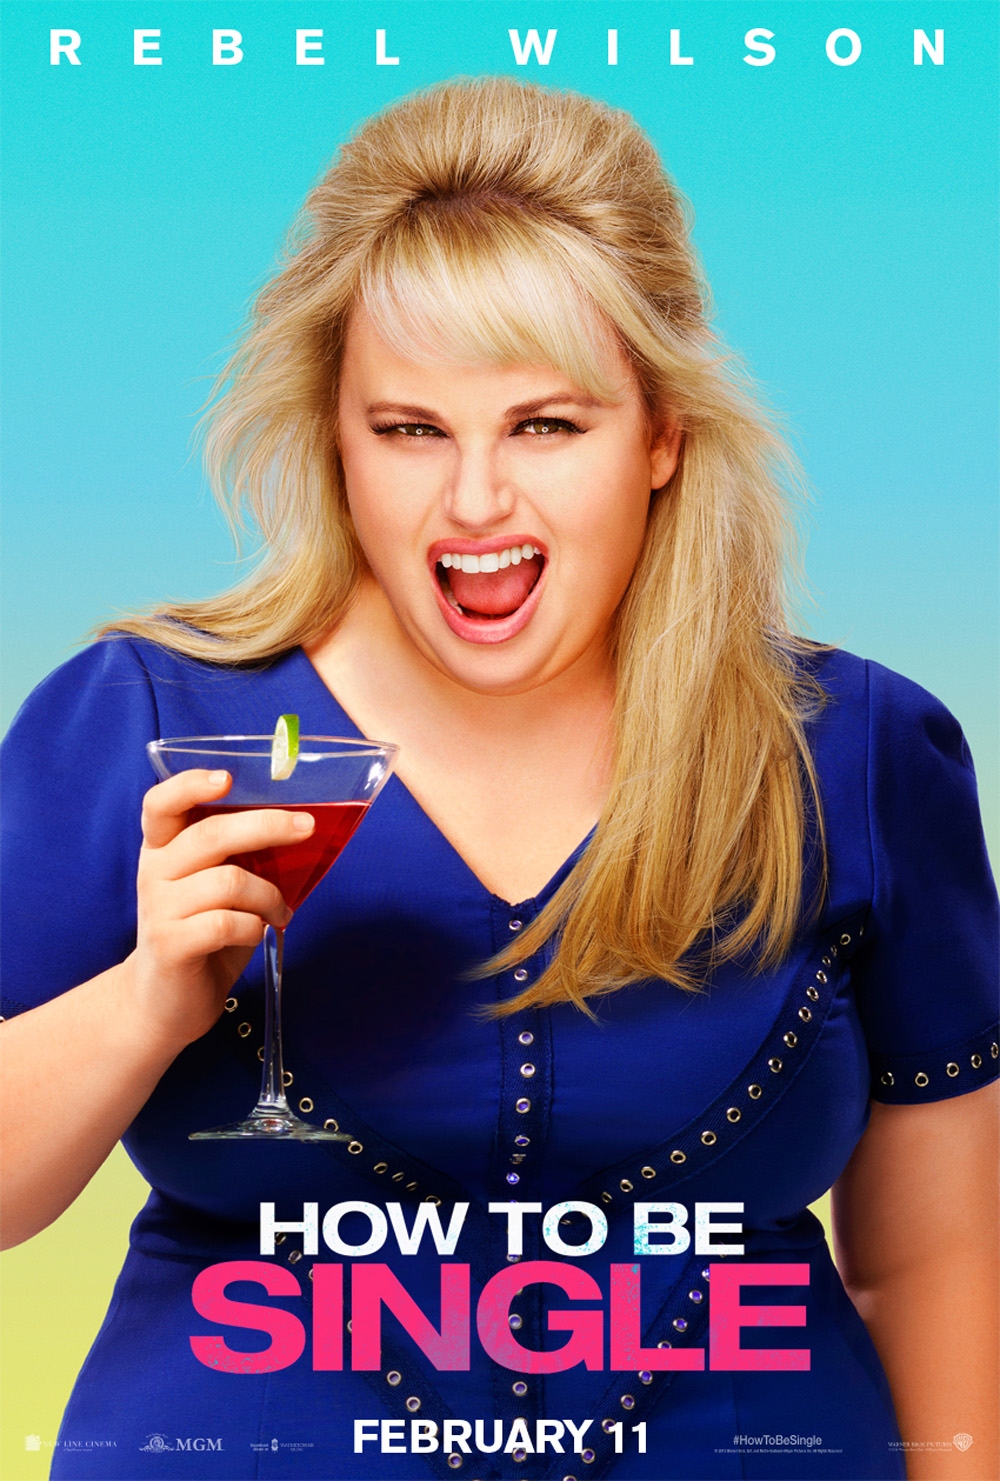 Stars of how to be single in their solo banners movie news in the film theres a right way to be single a wrong way to be single and thentheres alice and robin lucy meg tom david ccuart Gallery